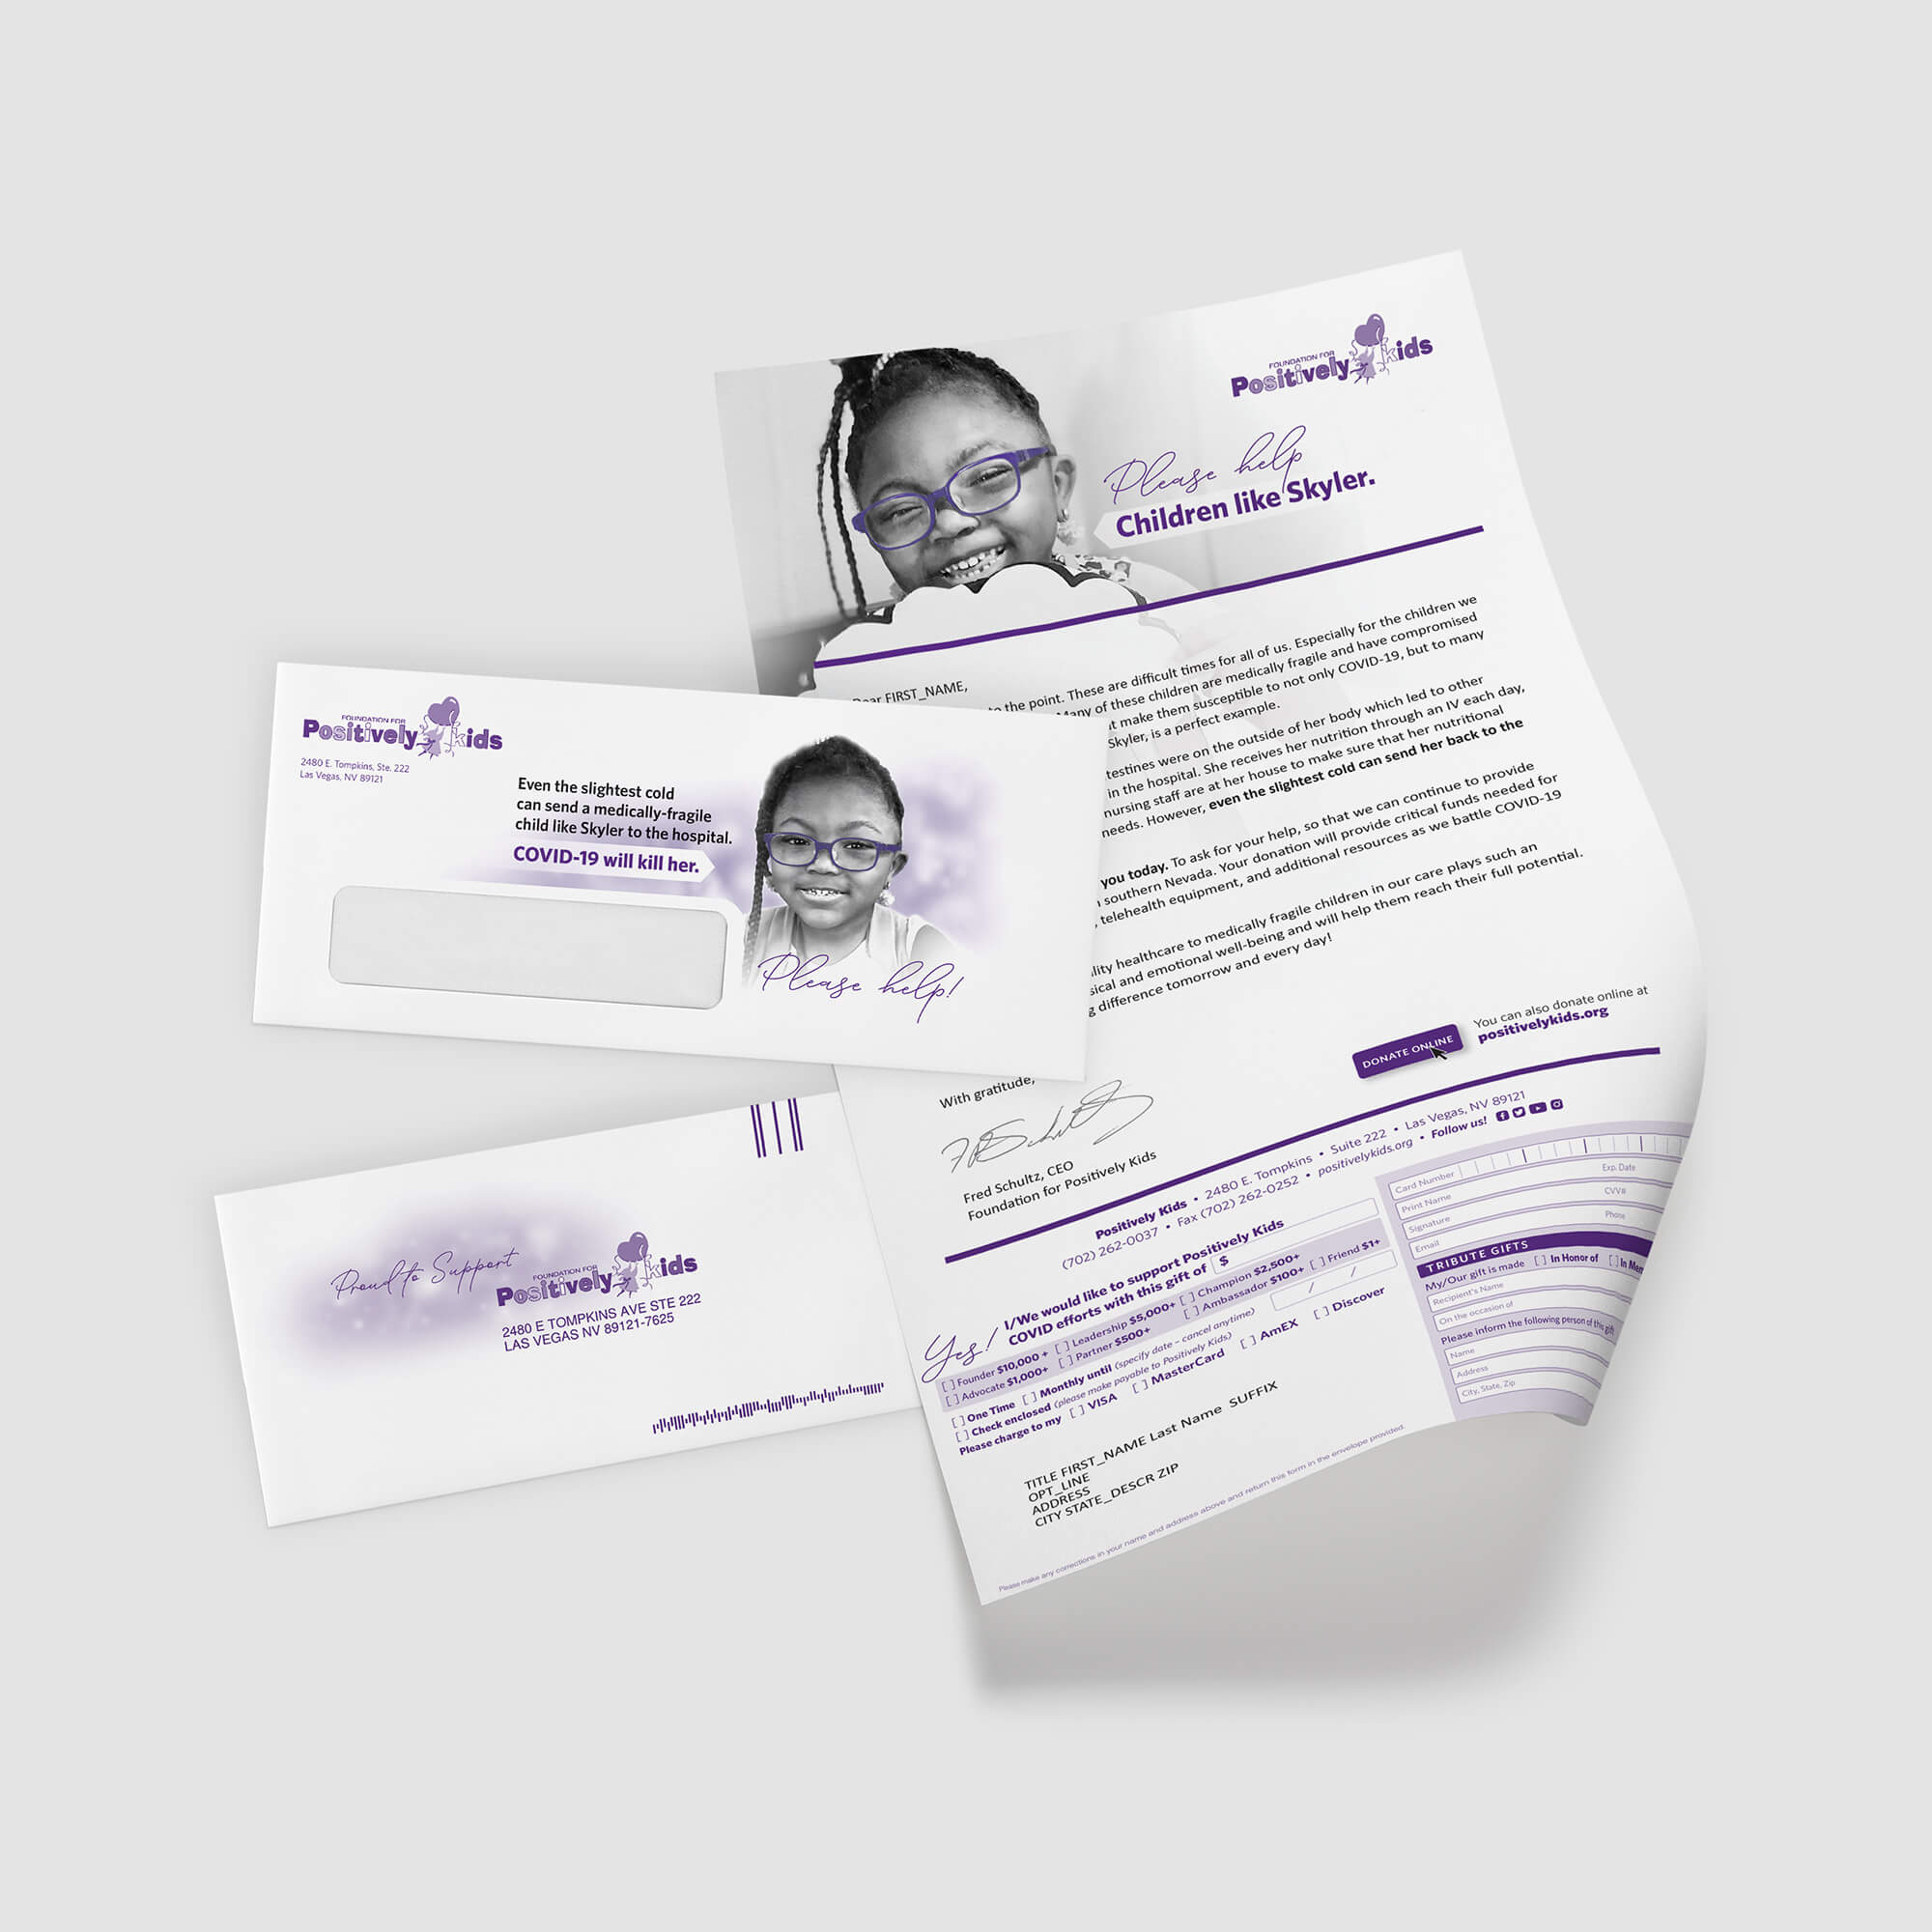 COVID-19 Direct Mail Campaign for Kids